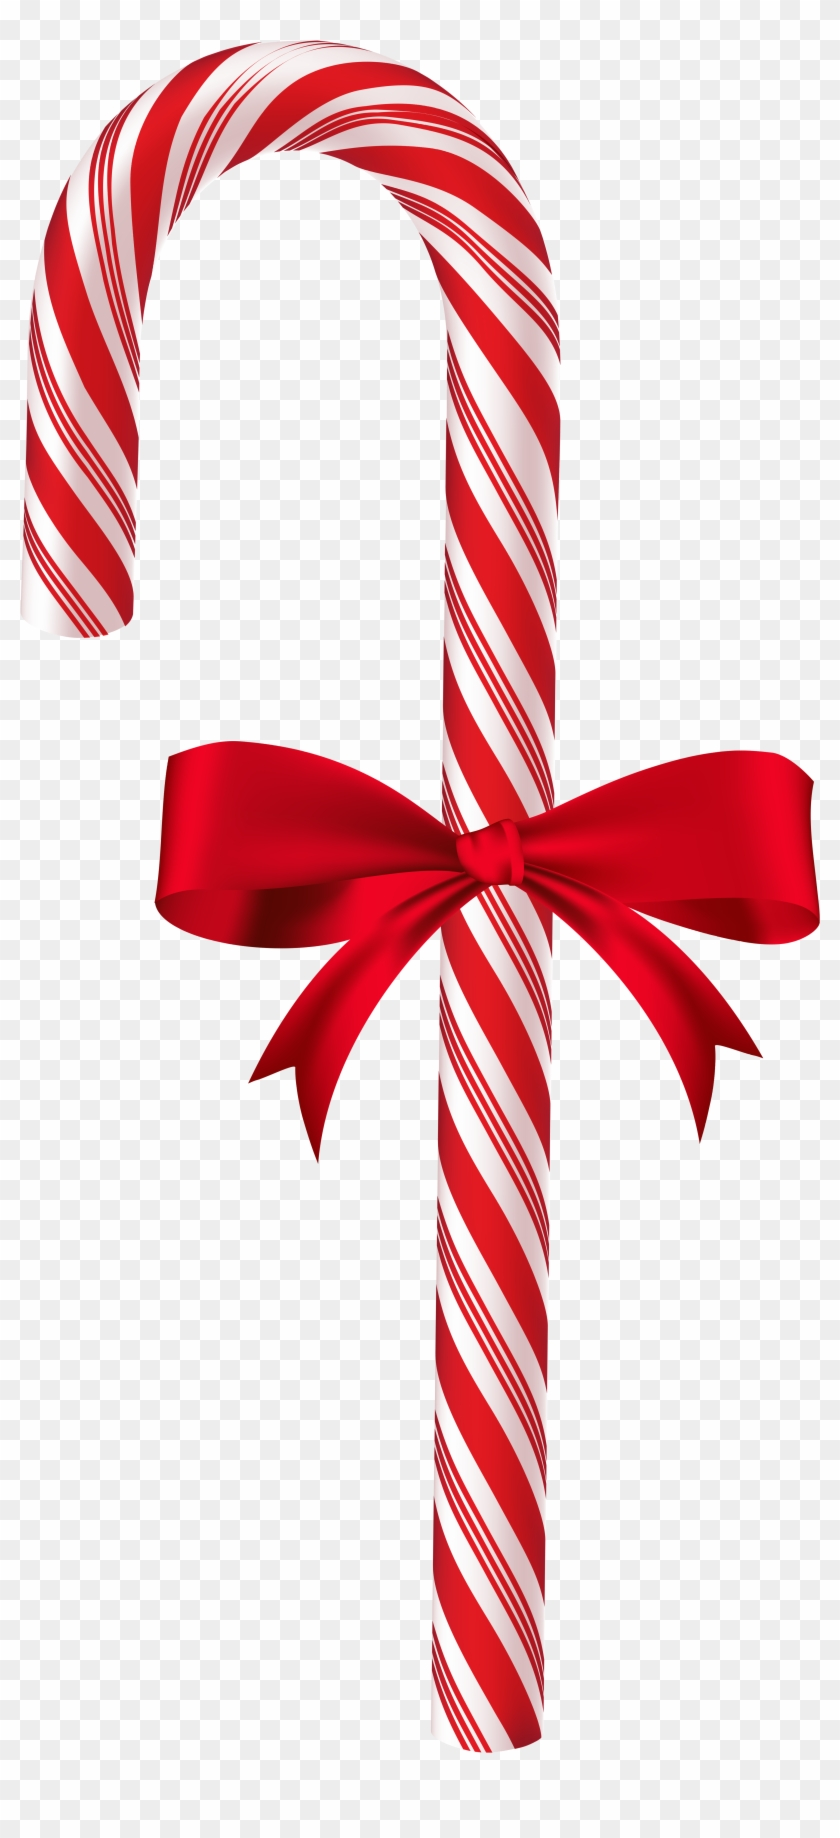 Candy Cane With Red Bow Png Clip Art Image - Doce Cabo De Guarda Chuva #145676